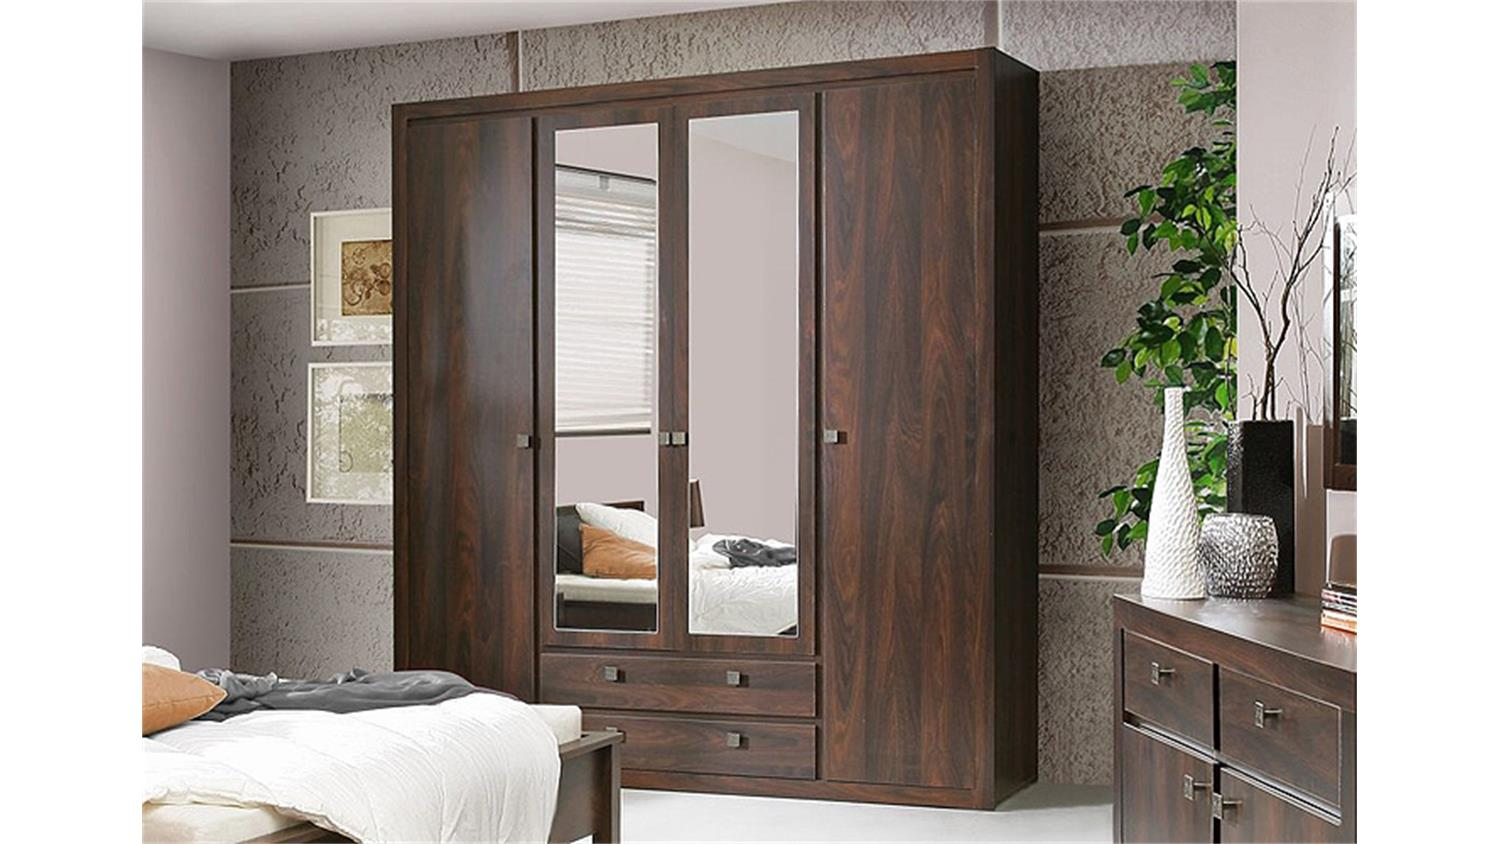 kleiderschrank indigo schrank in eiche durance kolonialstil. Black Bedroom Furniture Sets. Home Design Ideas